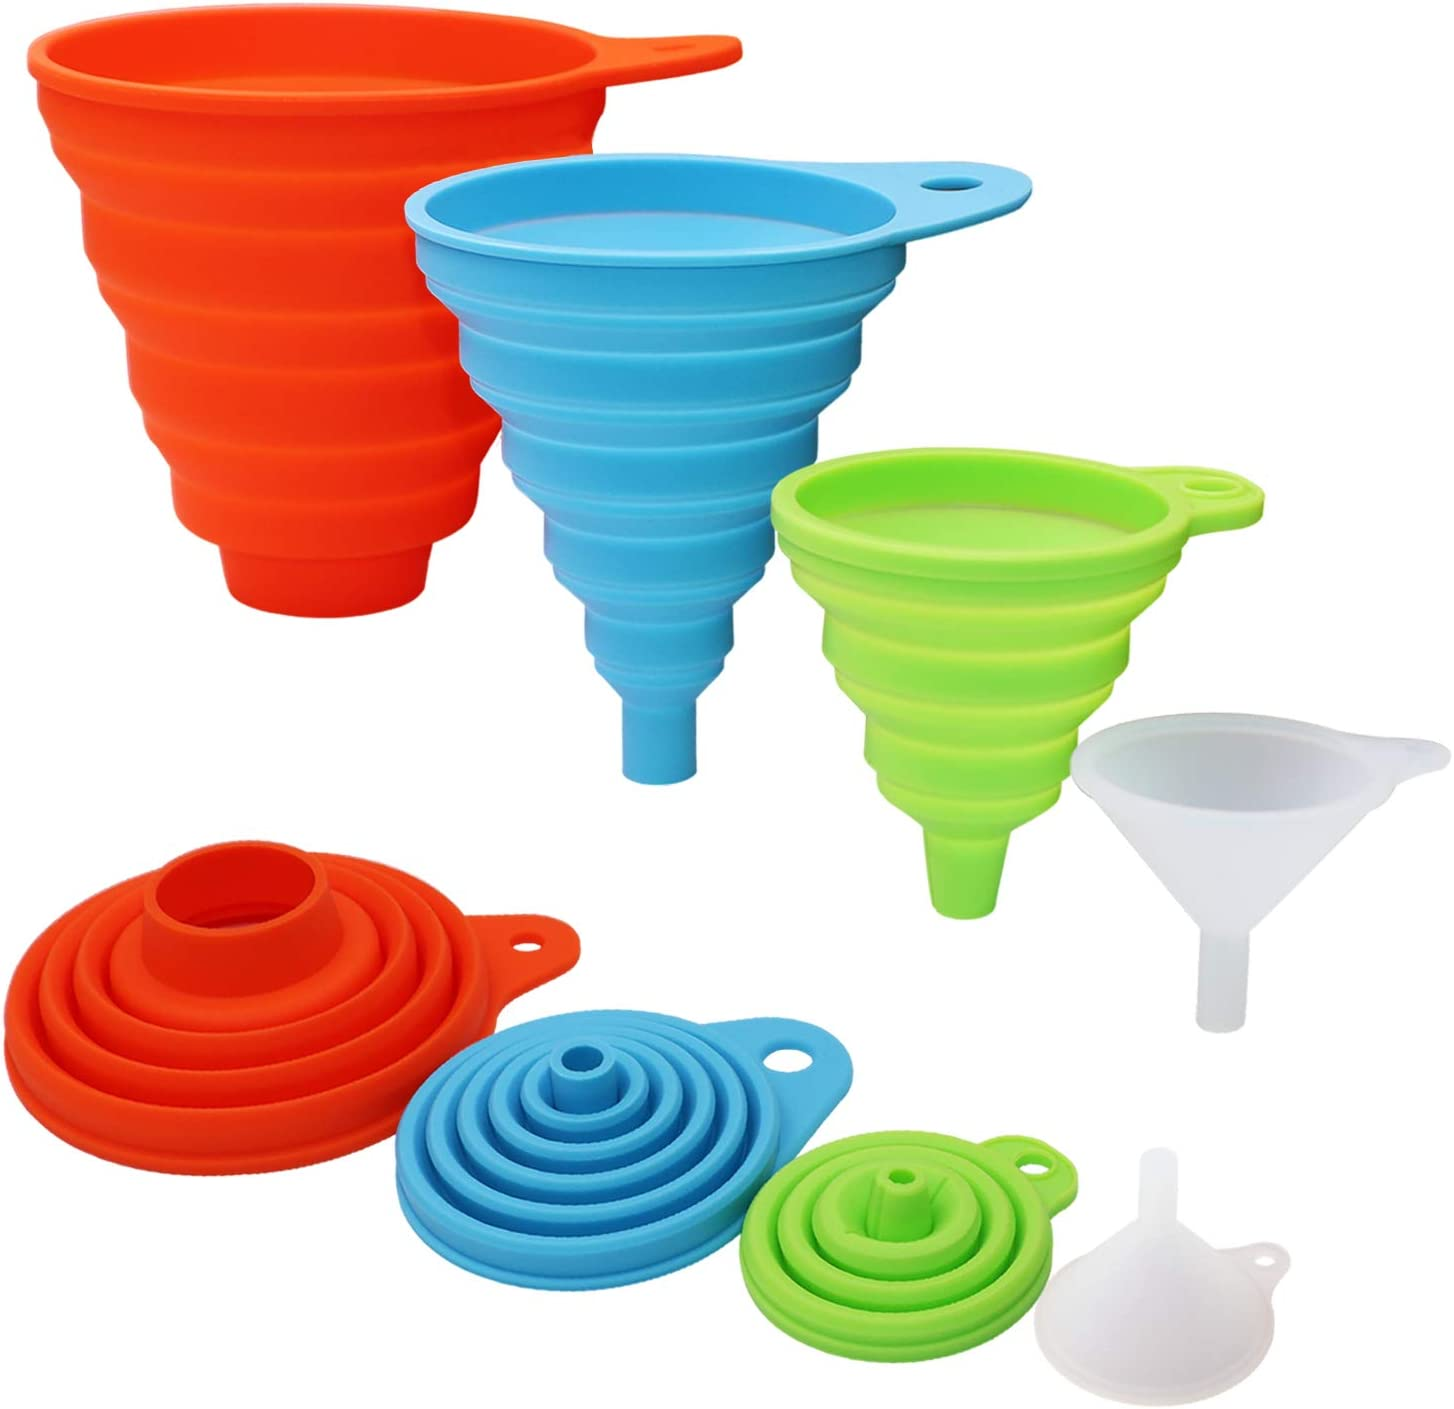 Silicone Collapsible Food Funnel Set, 4 Different Sizes Large Medium Small and Mini Funnels for Kitchen Use, Food Grade Funnel for Filling Bottles and Canning Jars, Liquid Solid Transfer